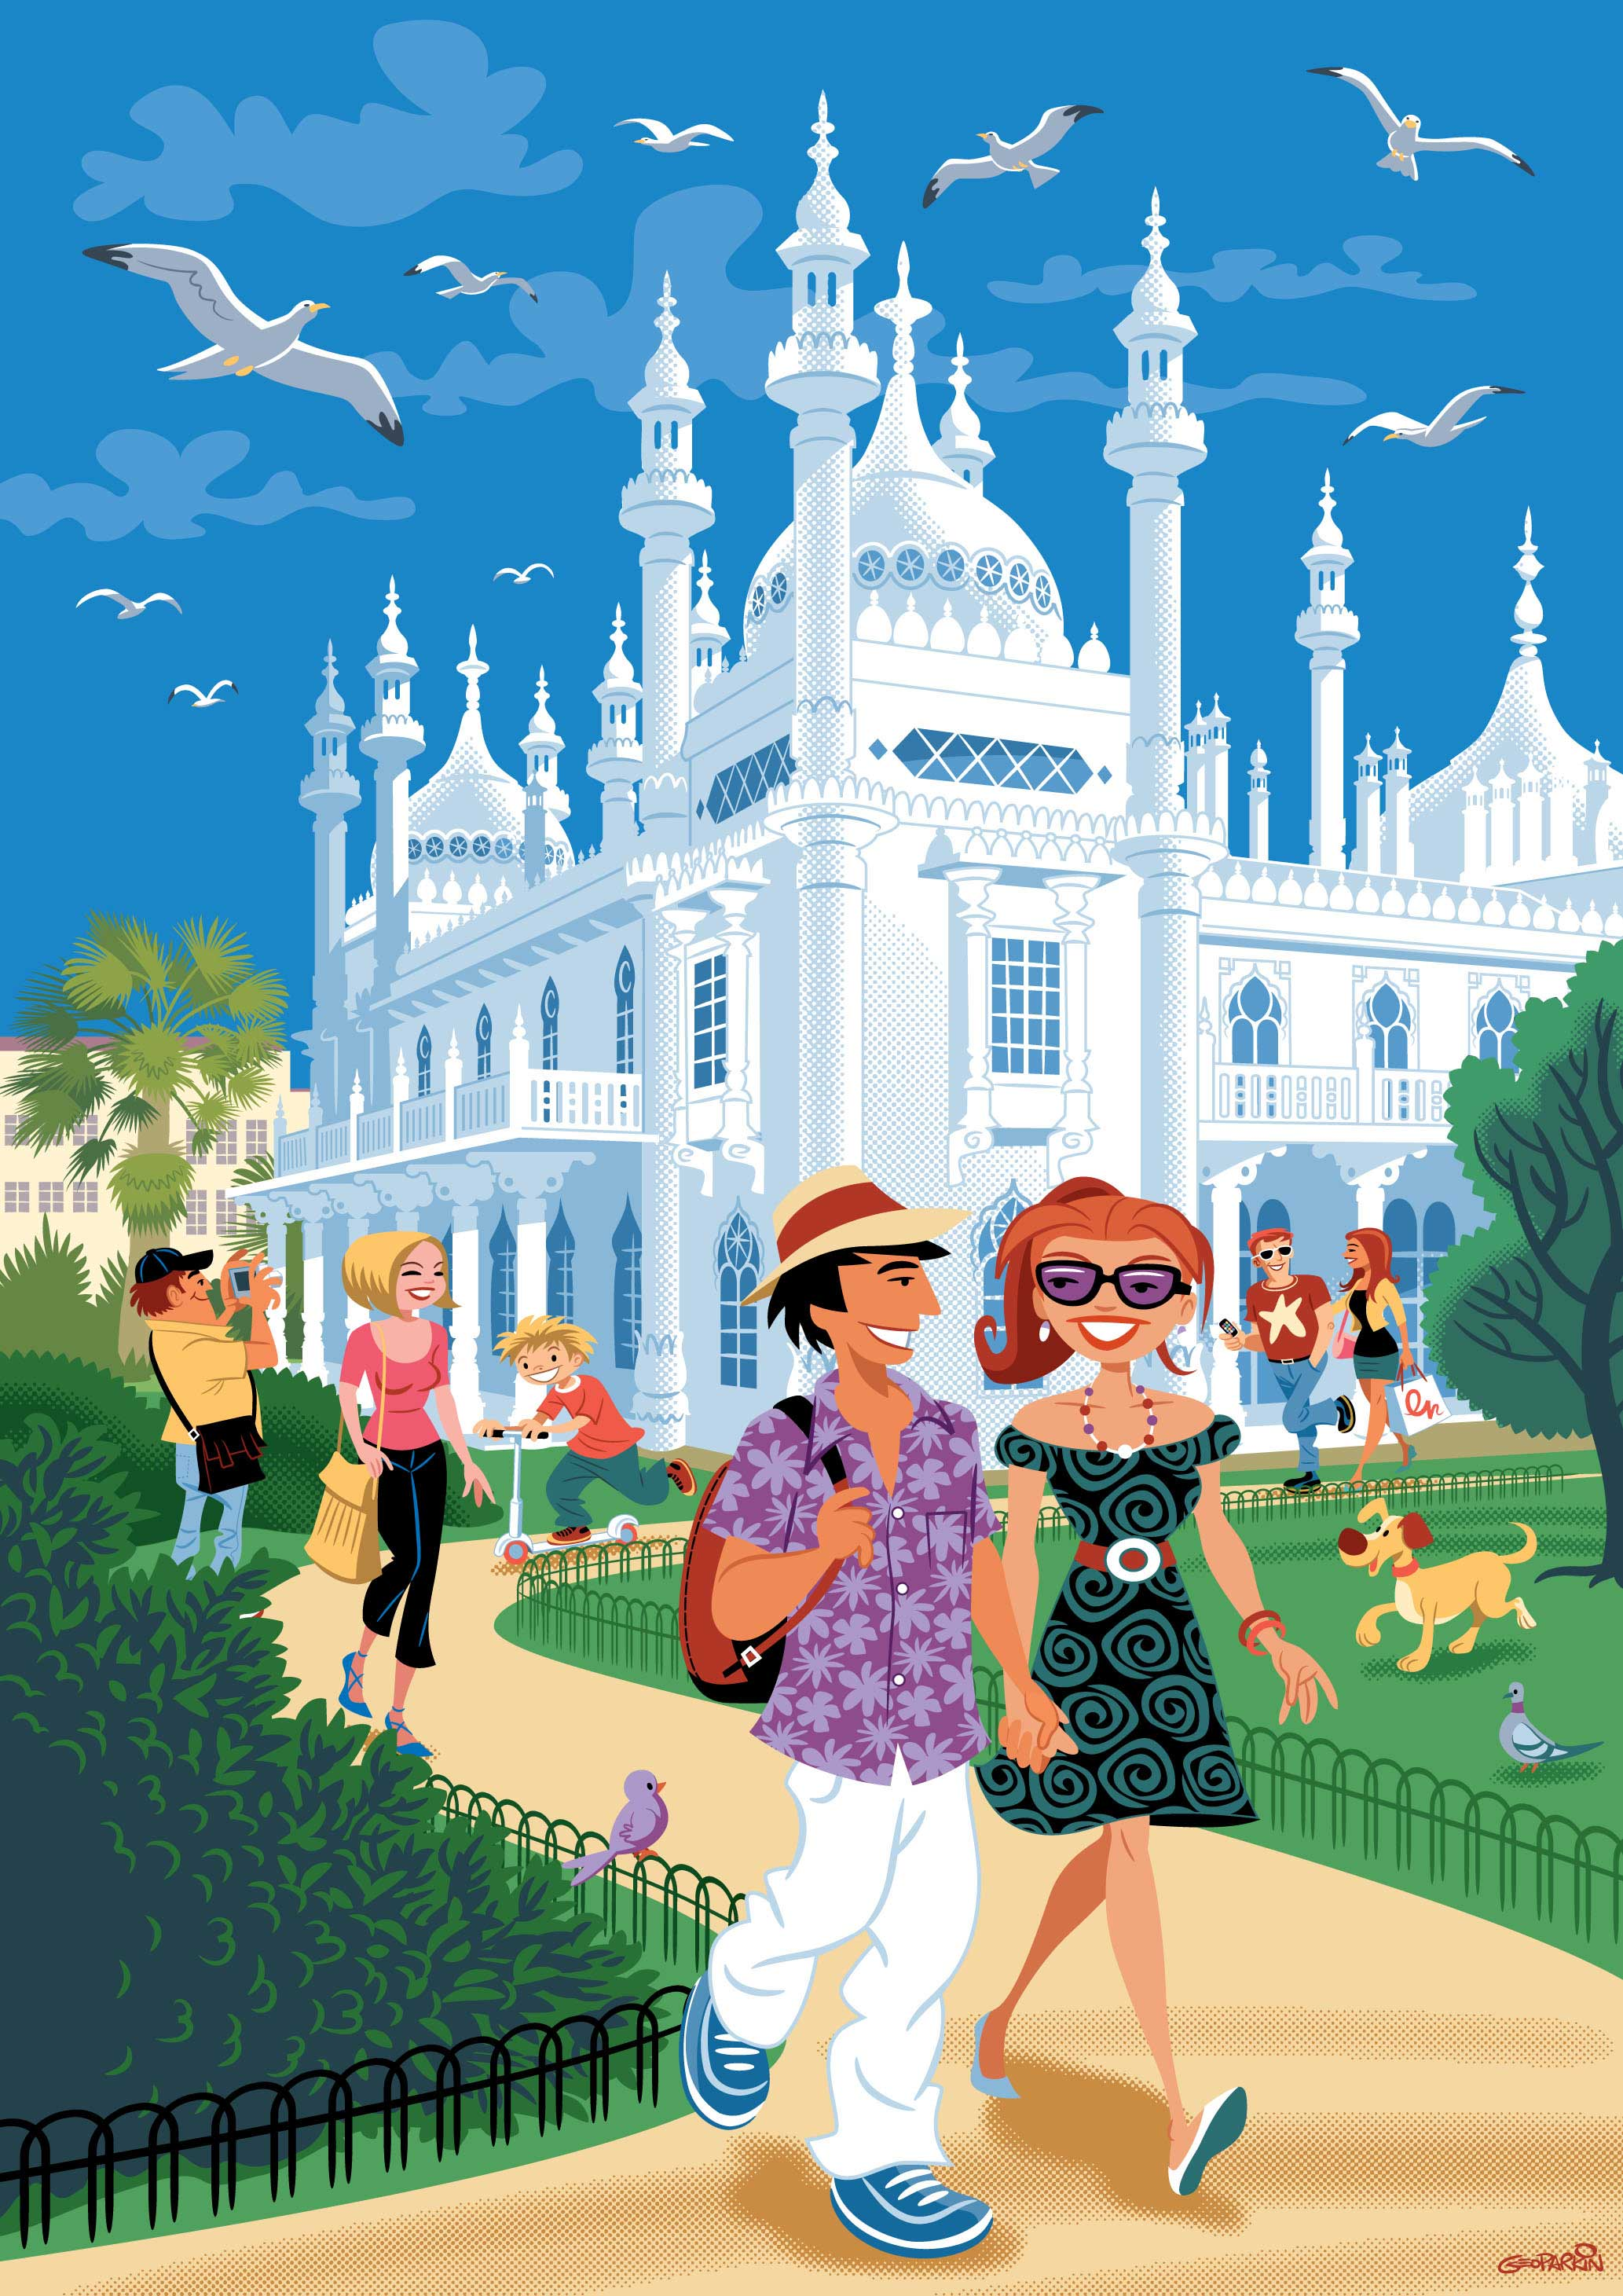 illustration-cartoon-people-BrightonPavilion-Geo Parkin